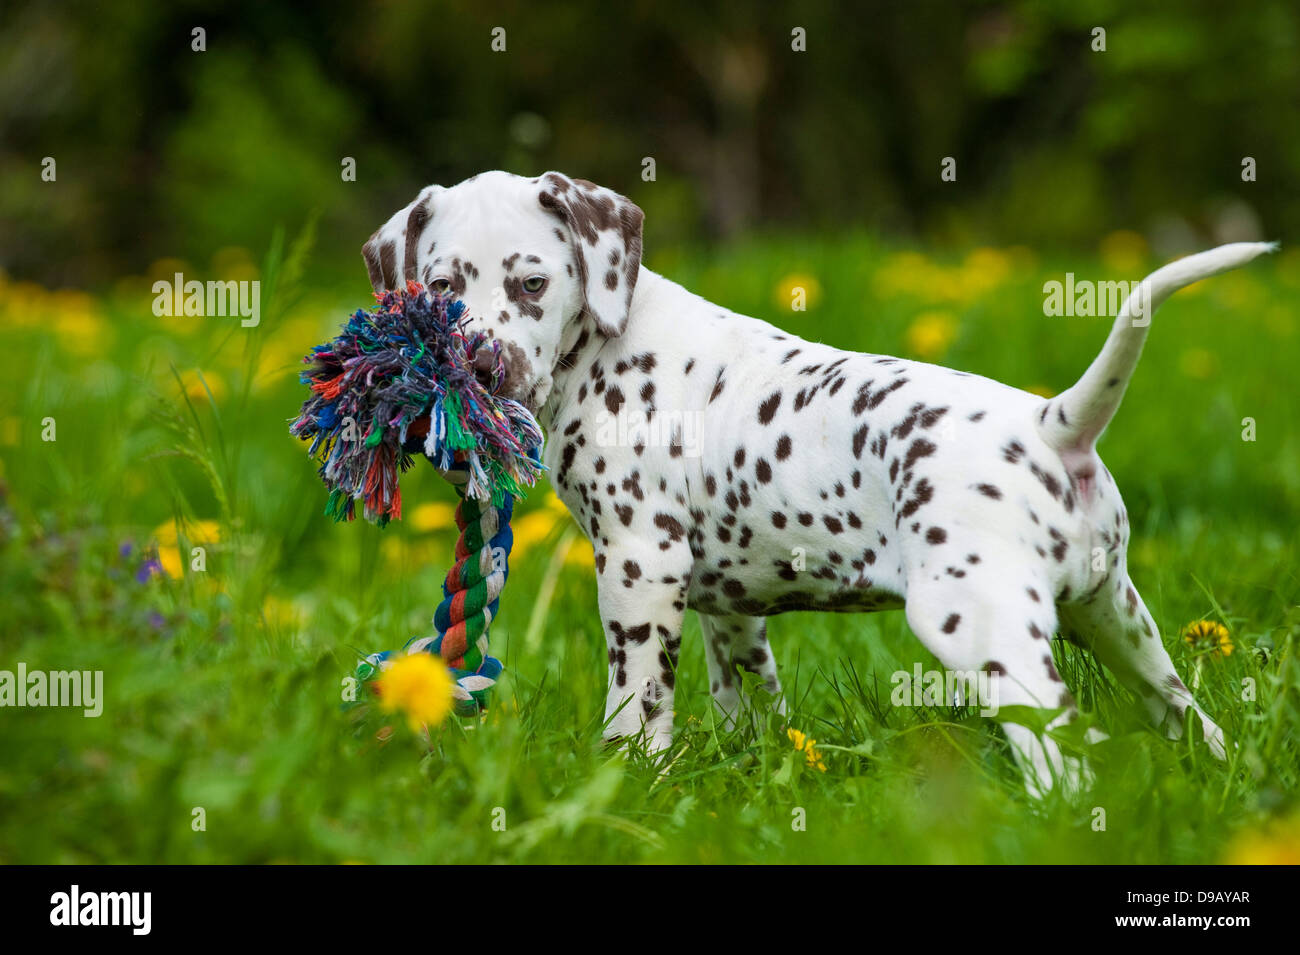 Dalmatian puppy with toy in a meadow - Stock Image